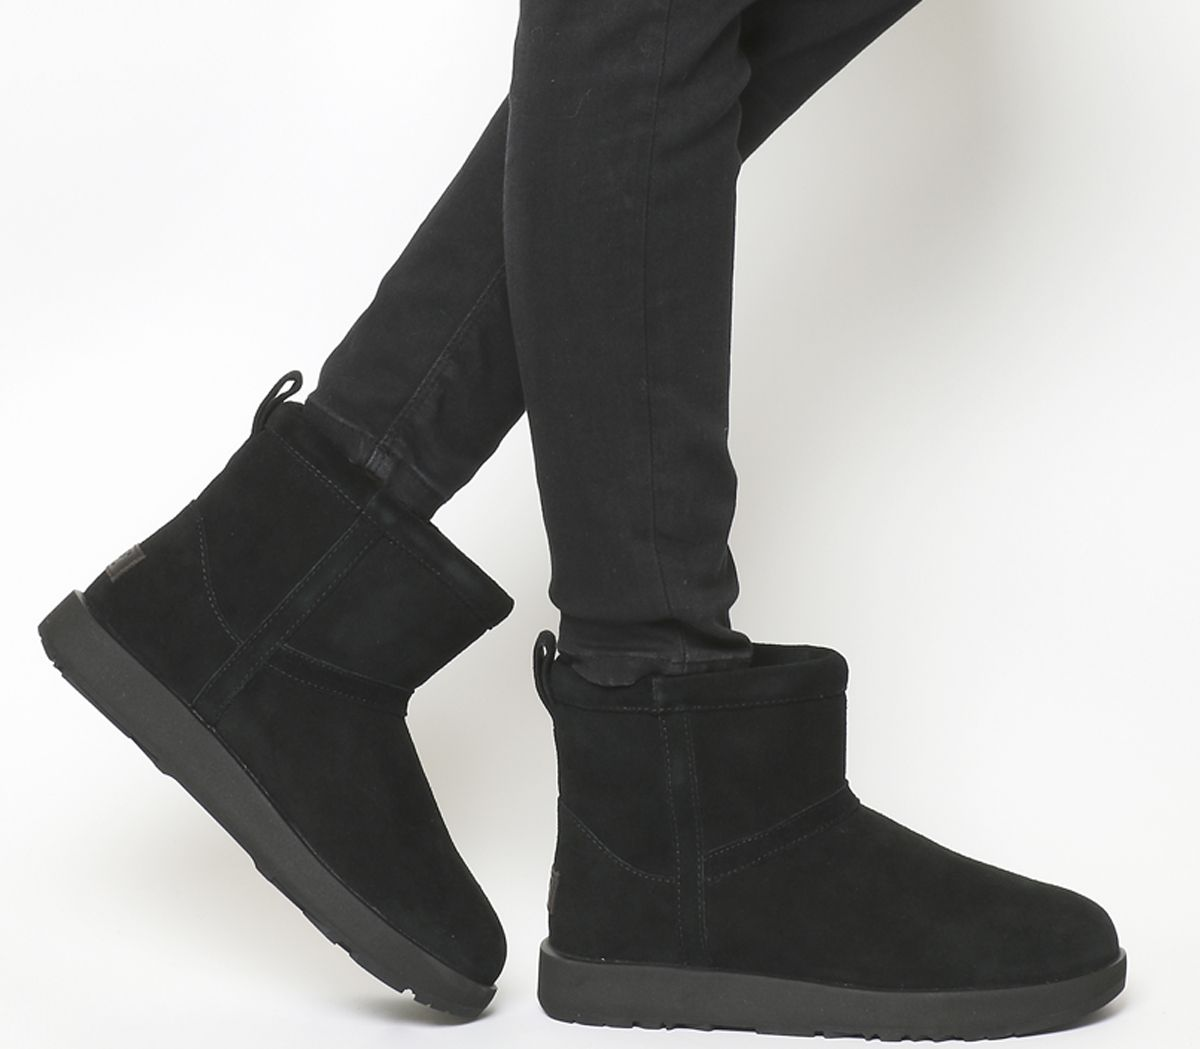 7b4618767f50 UGG Classic Mini Waterproof Boots Black Suede - Ankle Boots